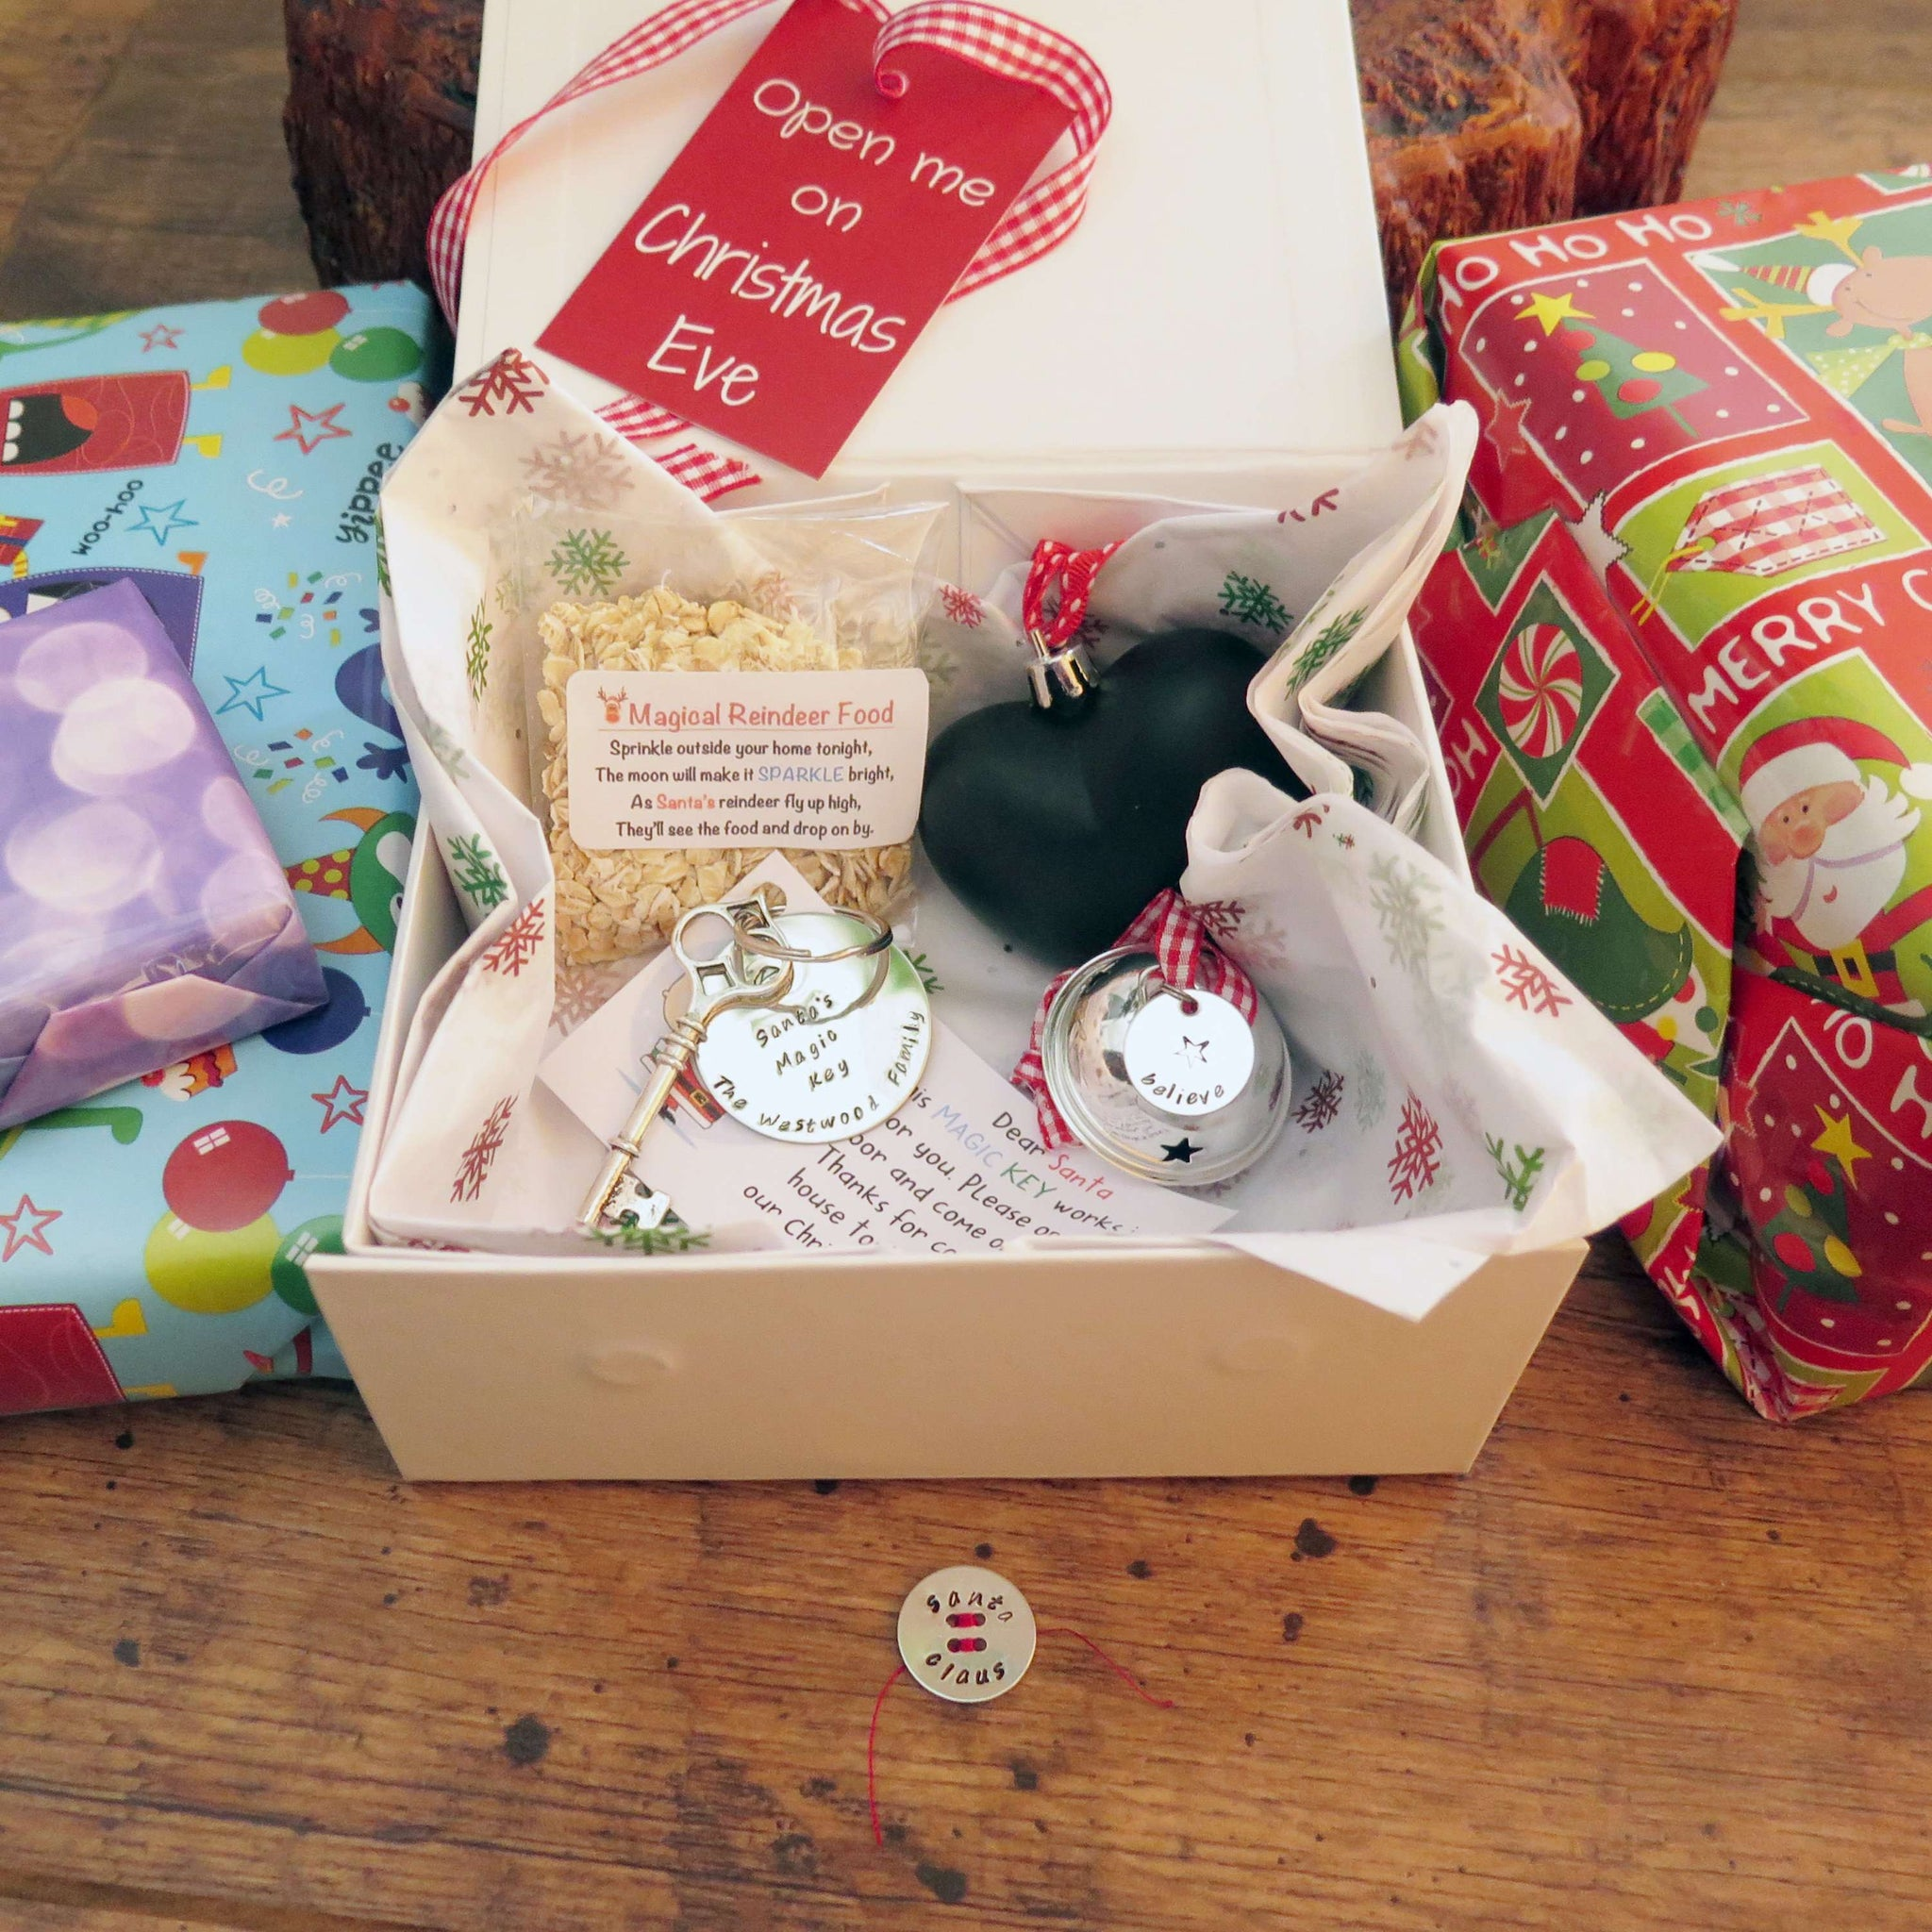 Christmas Eve Box For Children Including Santas Lost Button